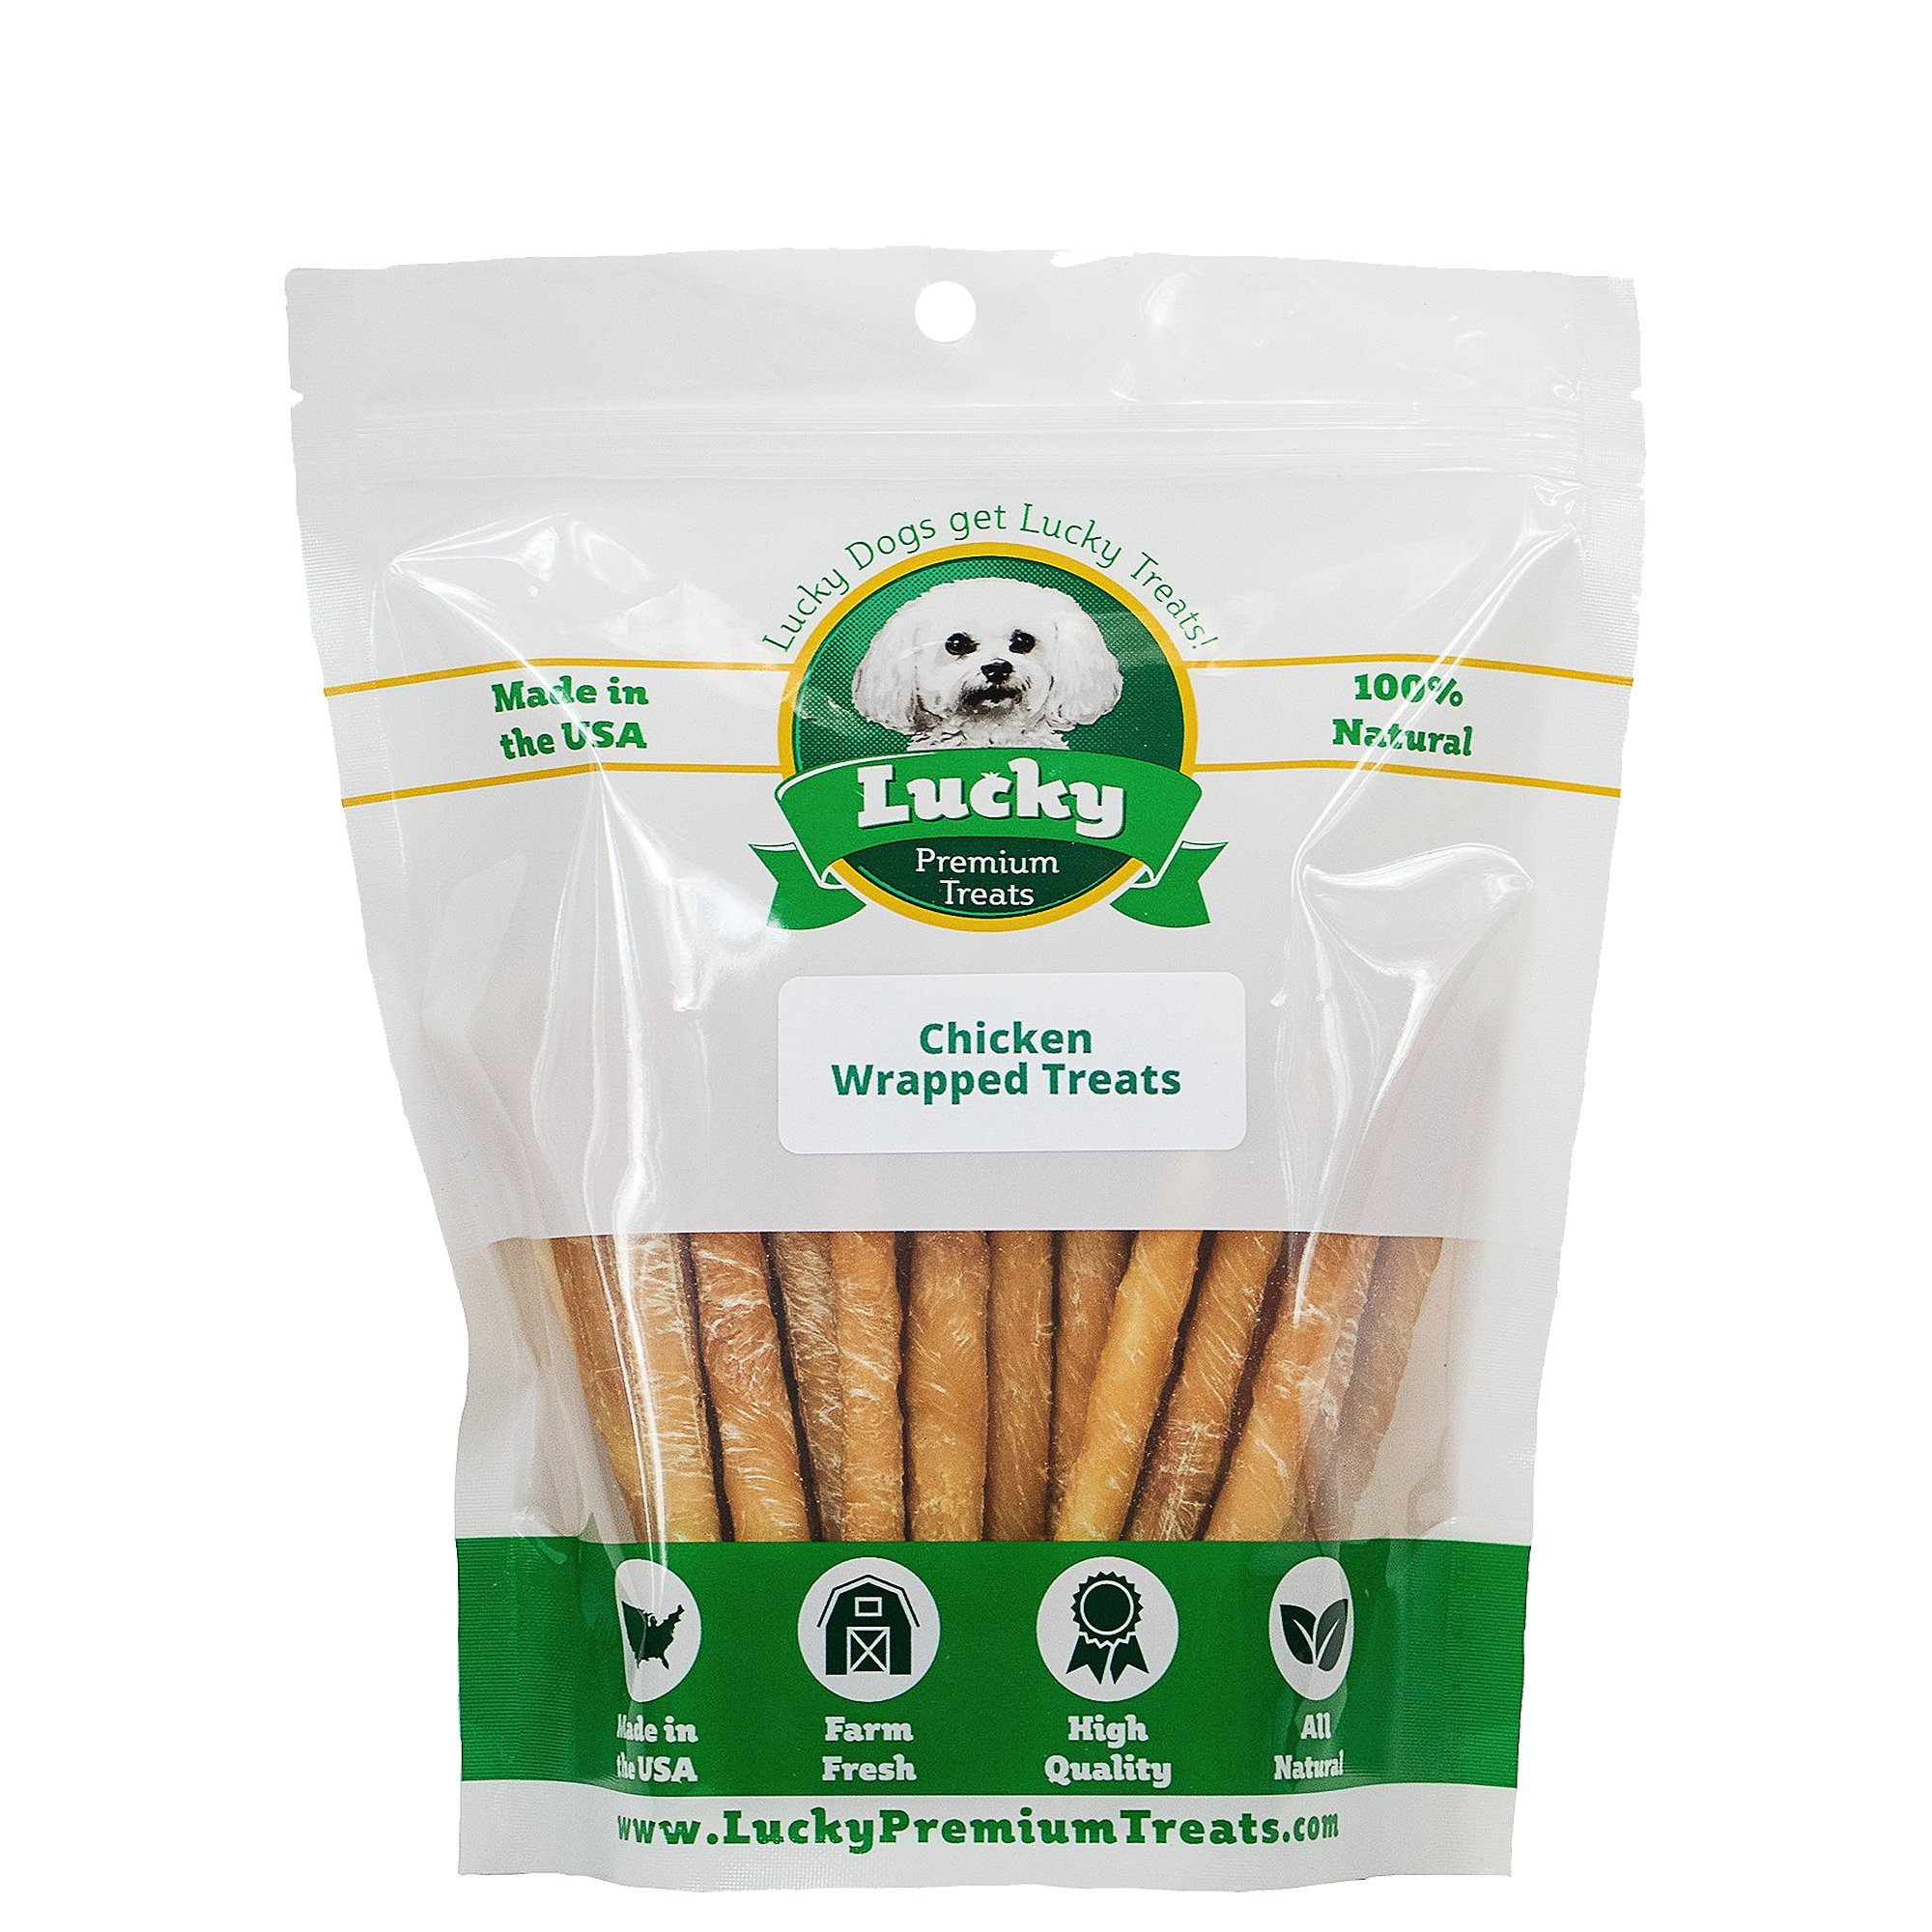 Healthy Chicken Wrapped Rawhide Dog Treats by Lucky Premium Treats, Gluten Free Dog Treats for Small Dogs, 250 Chews by Lucky Premium Treats